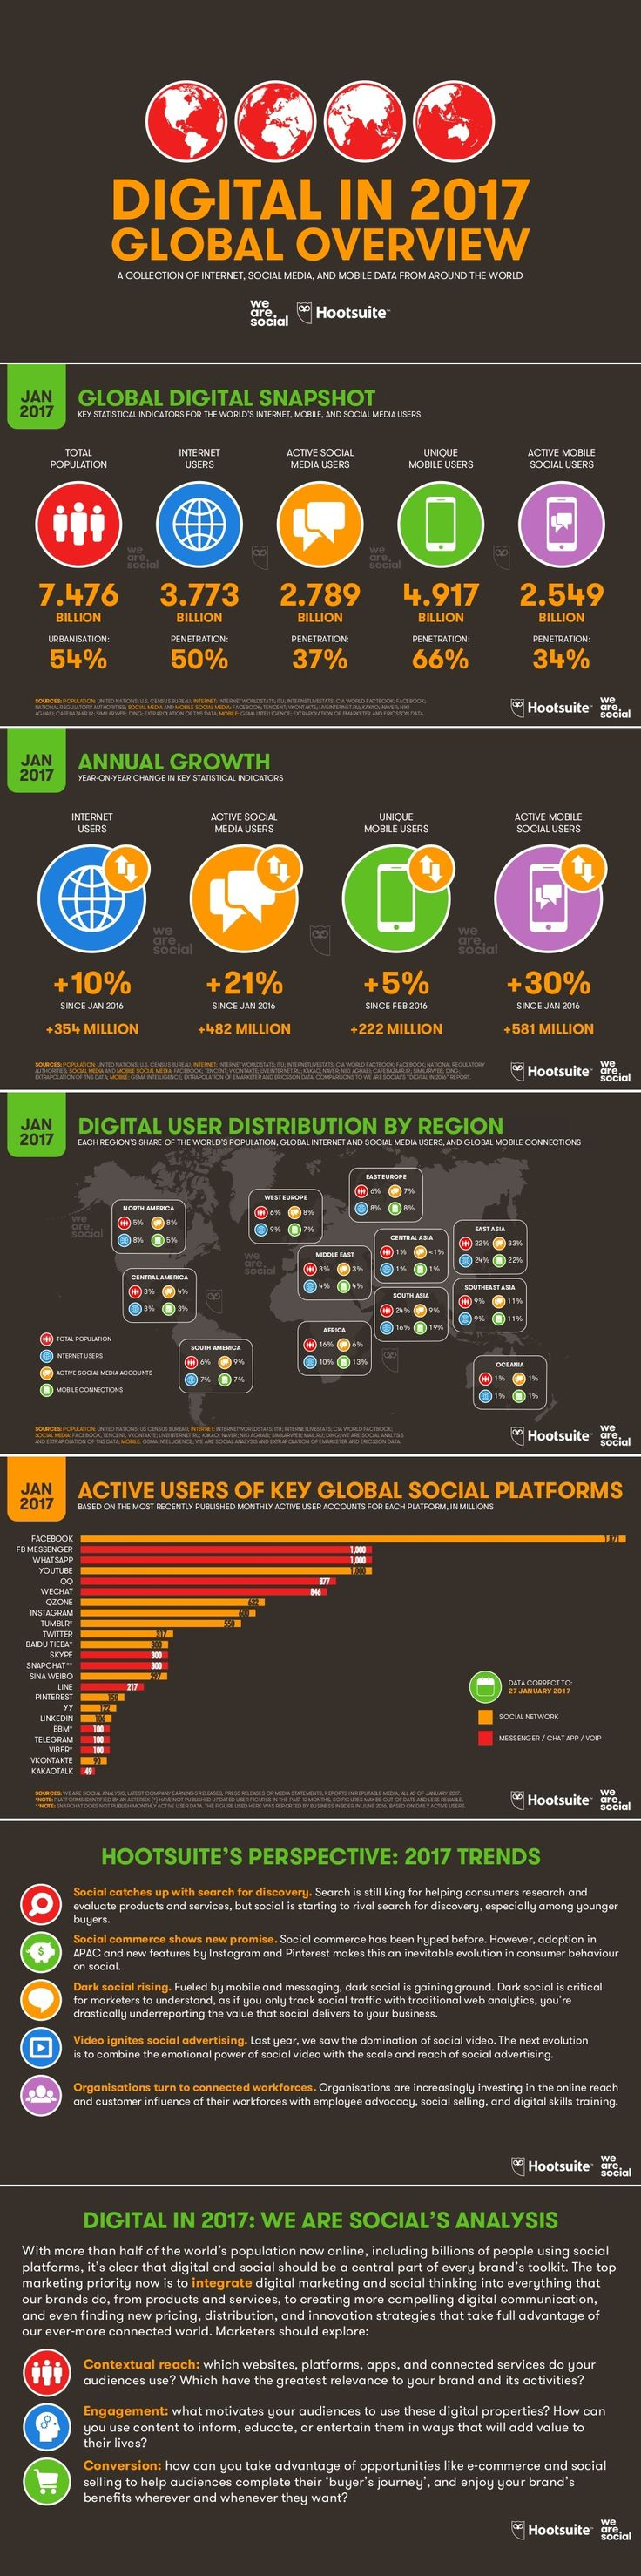 Where Should You be Active? Global Social Media Usage Stats for 2017 [Infographic]